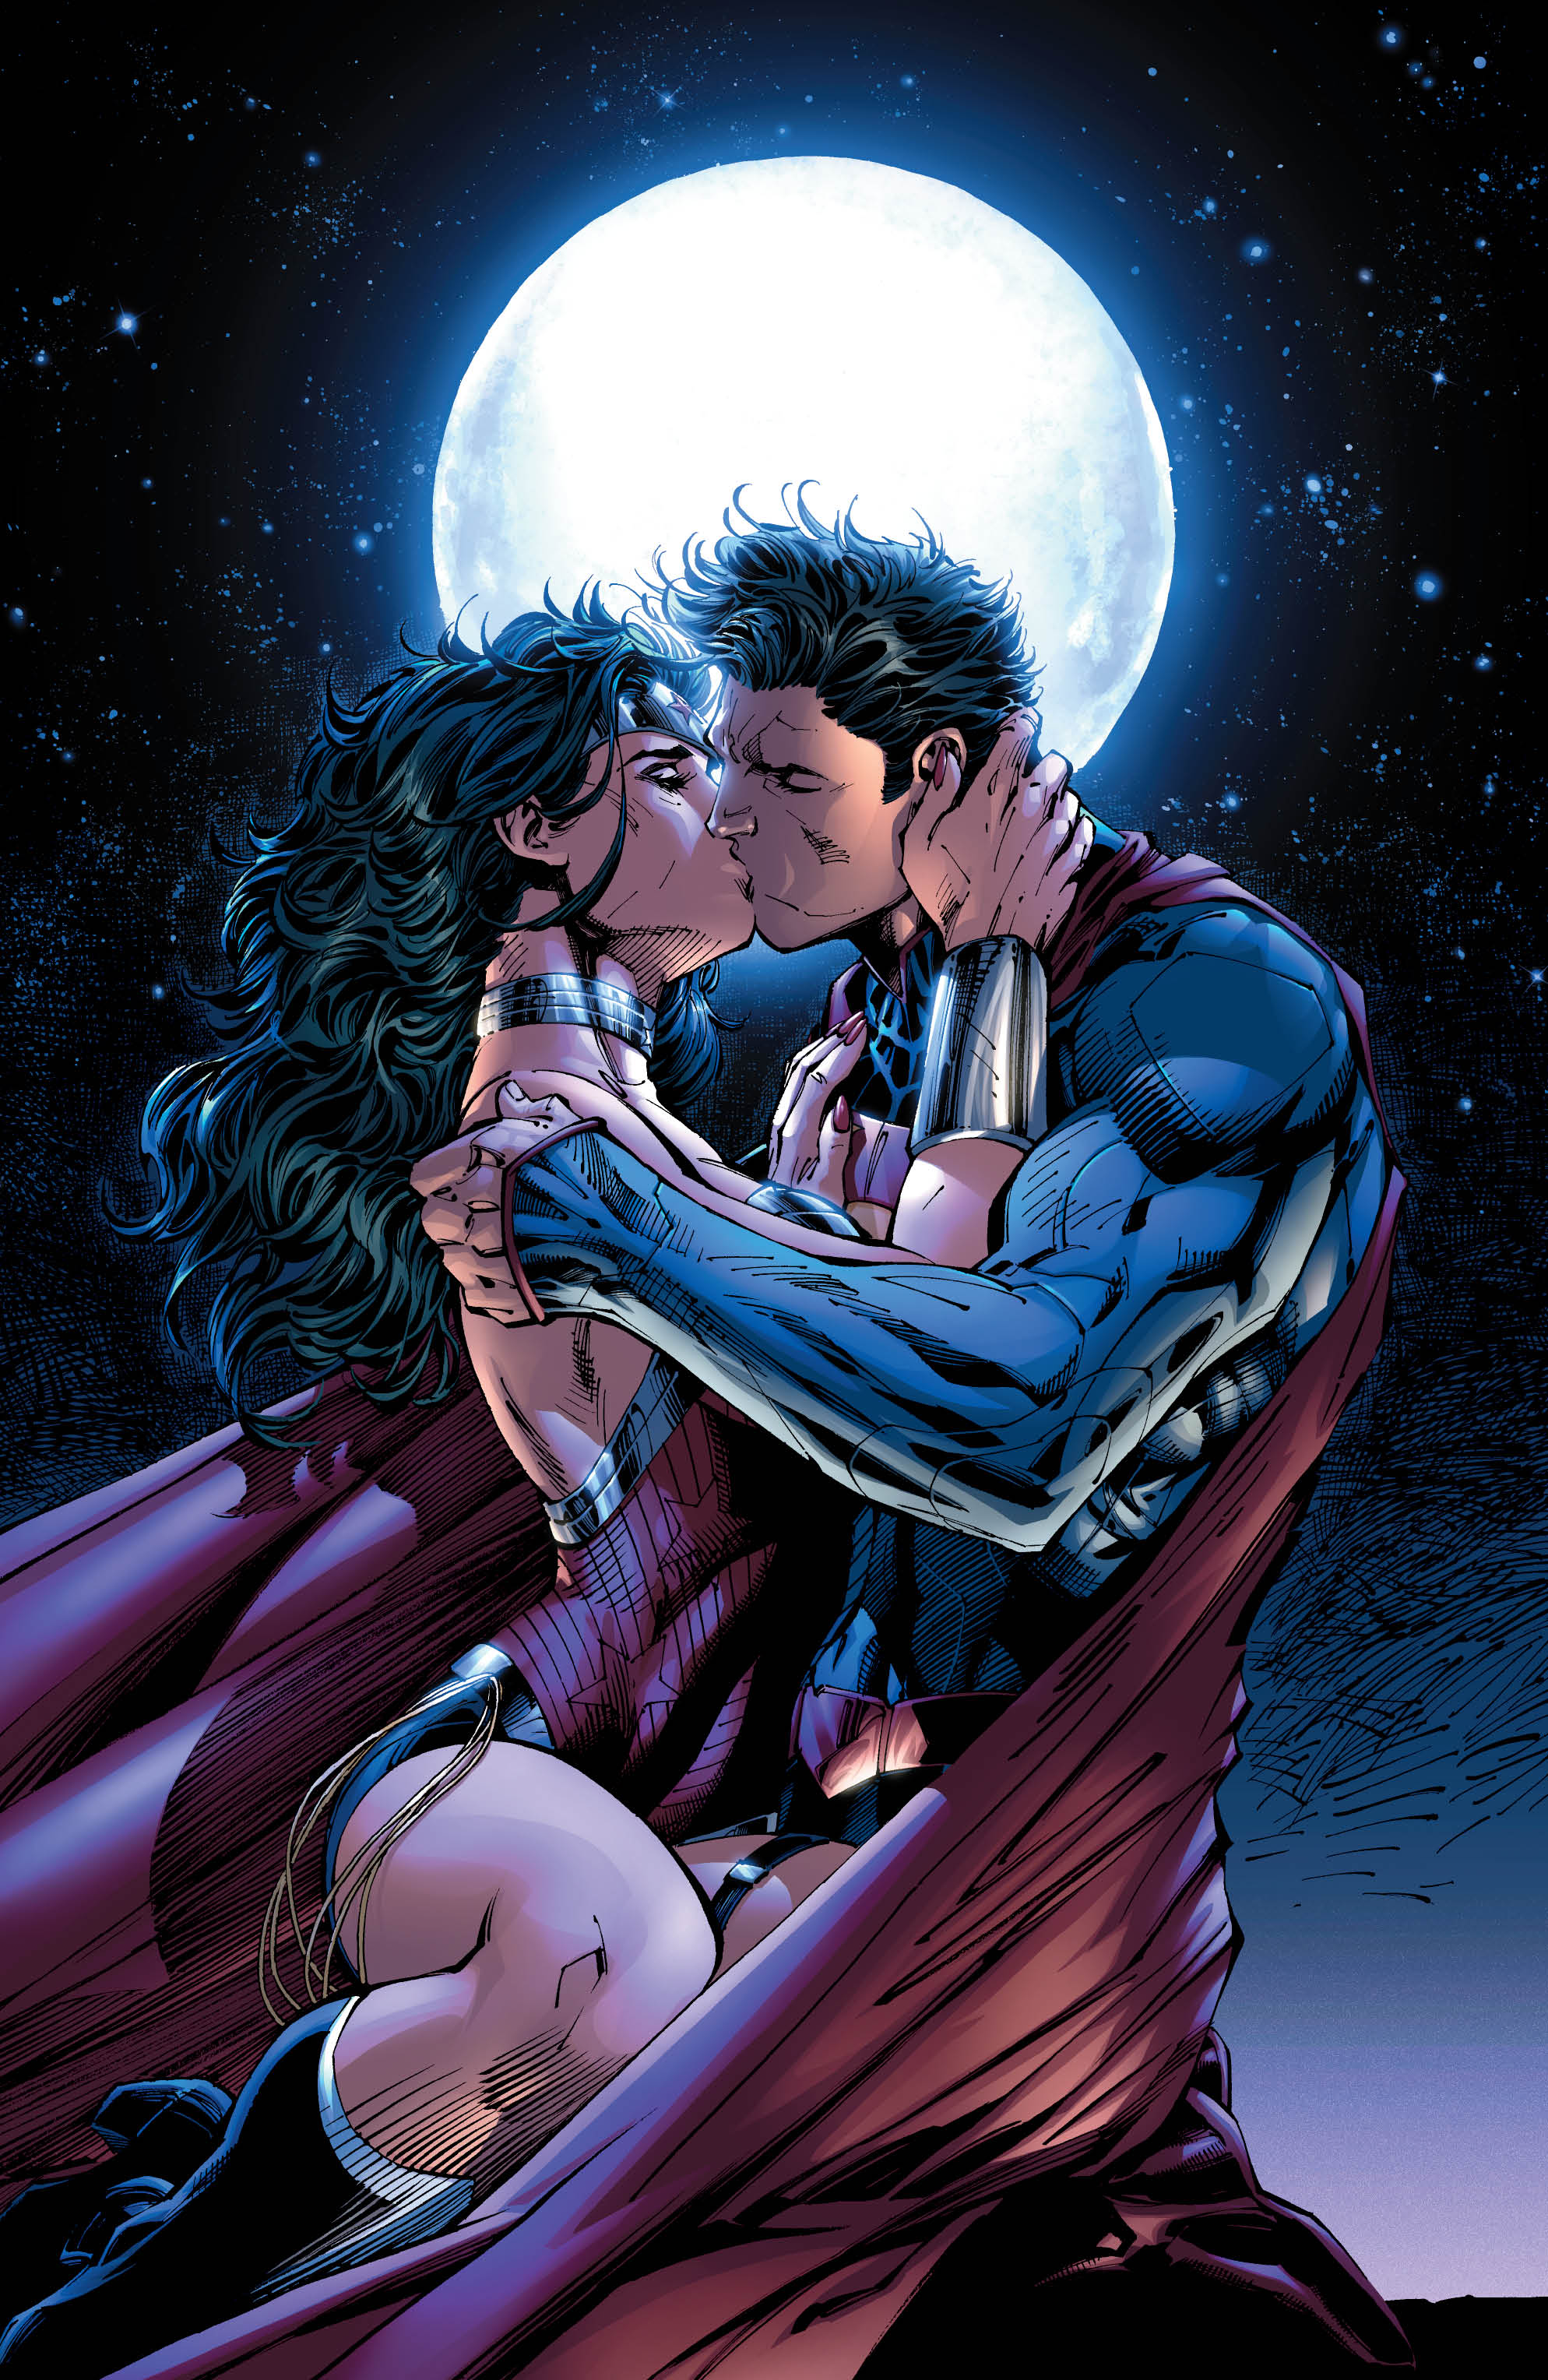 Wonderwoman and batman in love